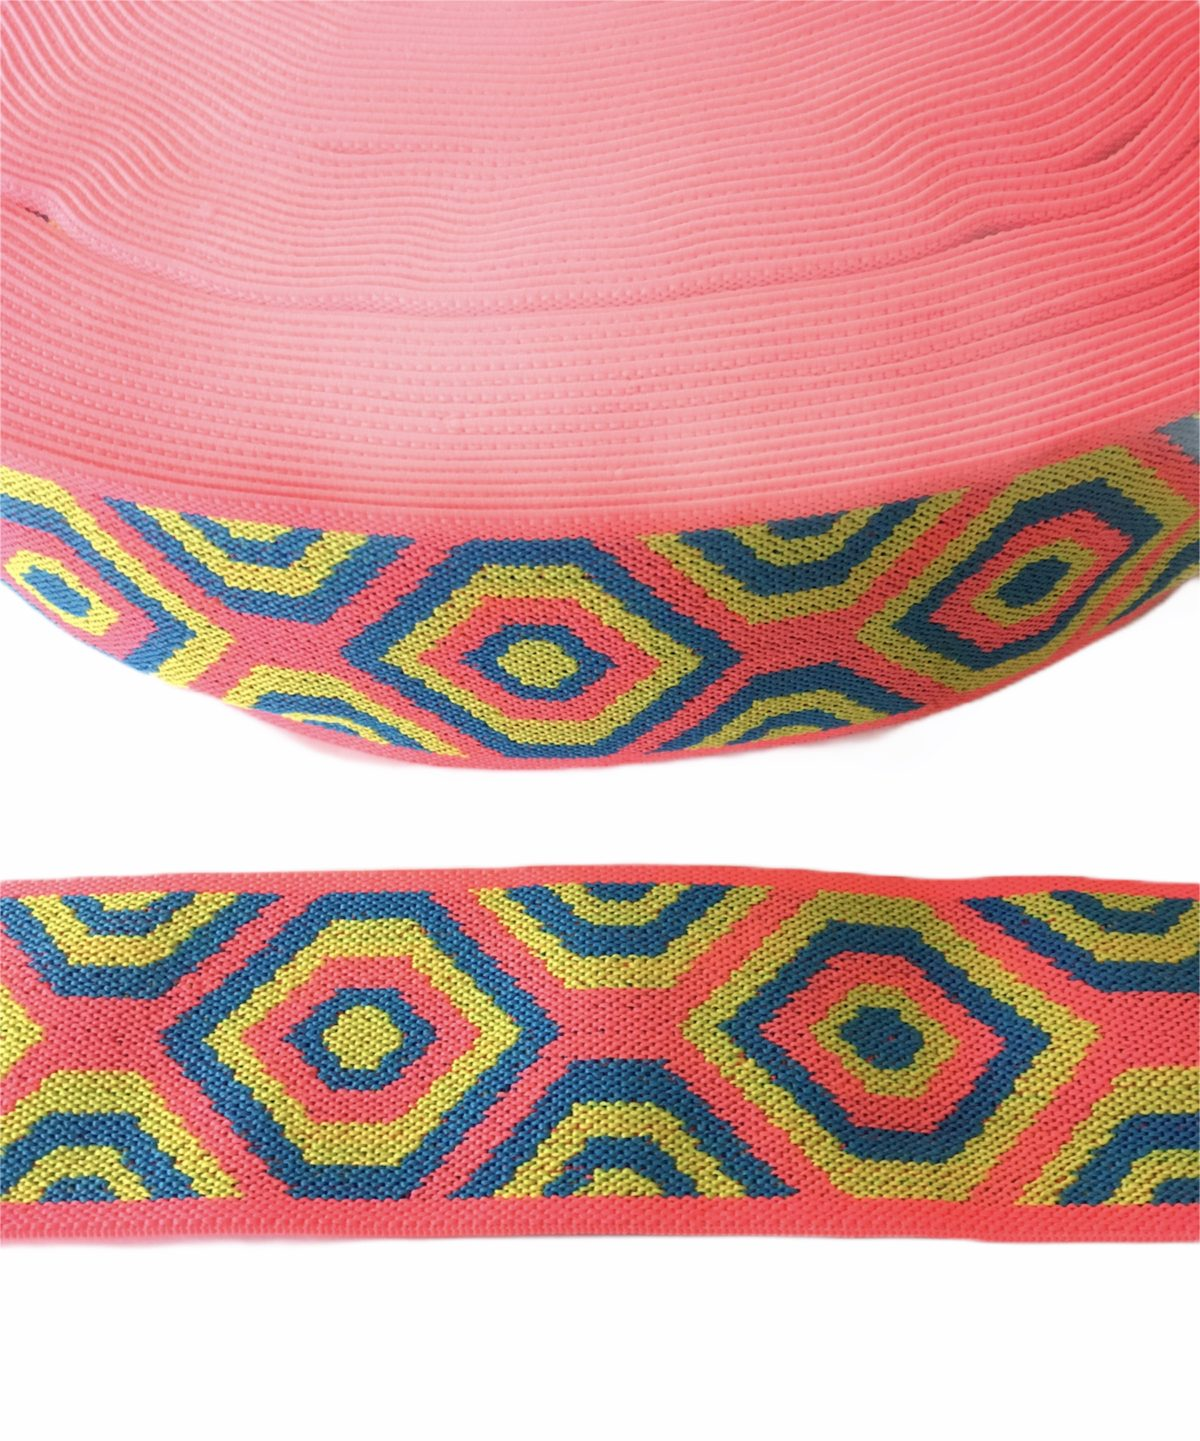 "Beautiful Aztec Inspired Colorful Elastic Trim 2"" 2"